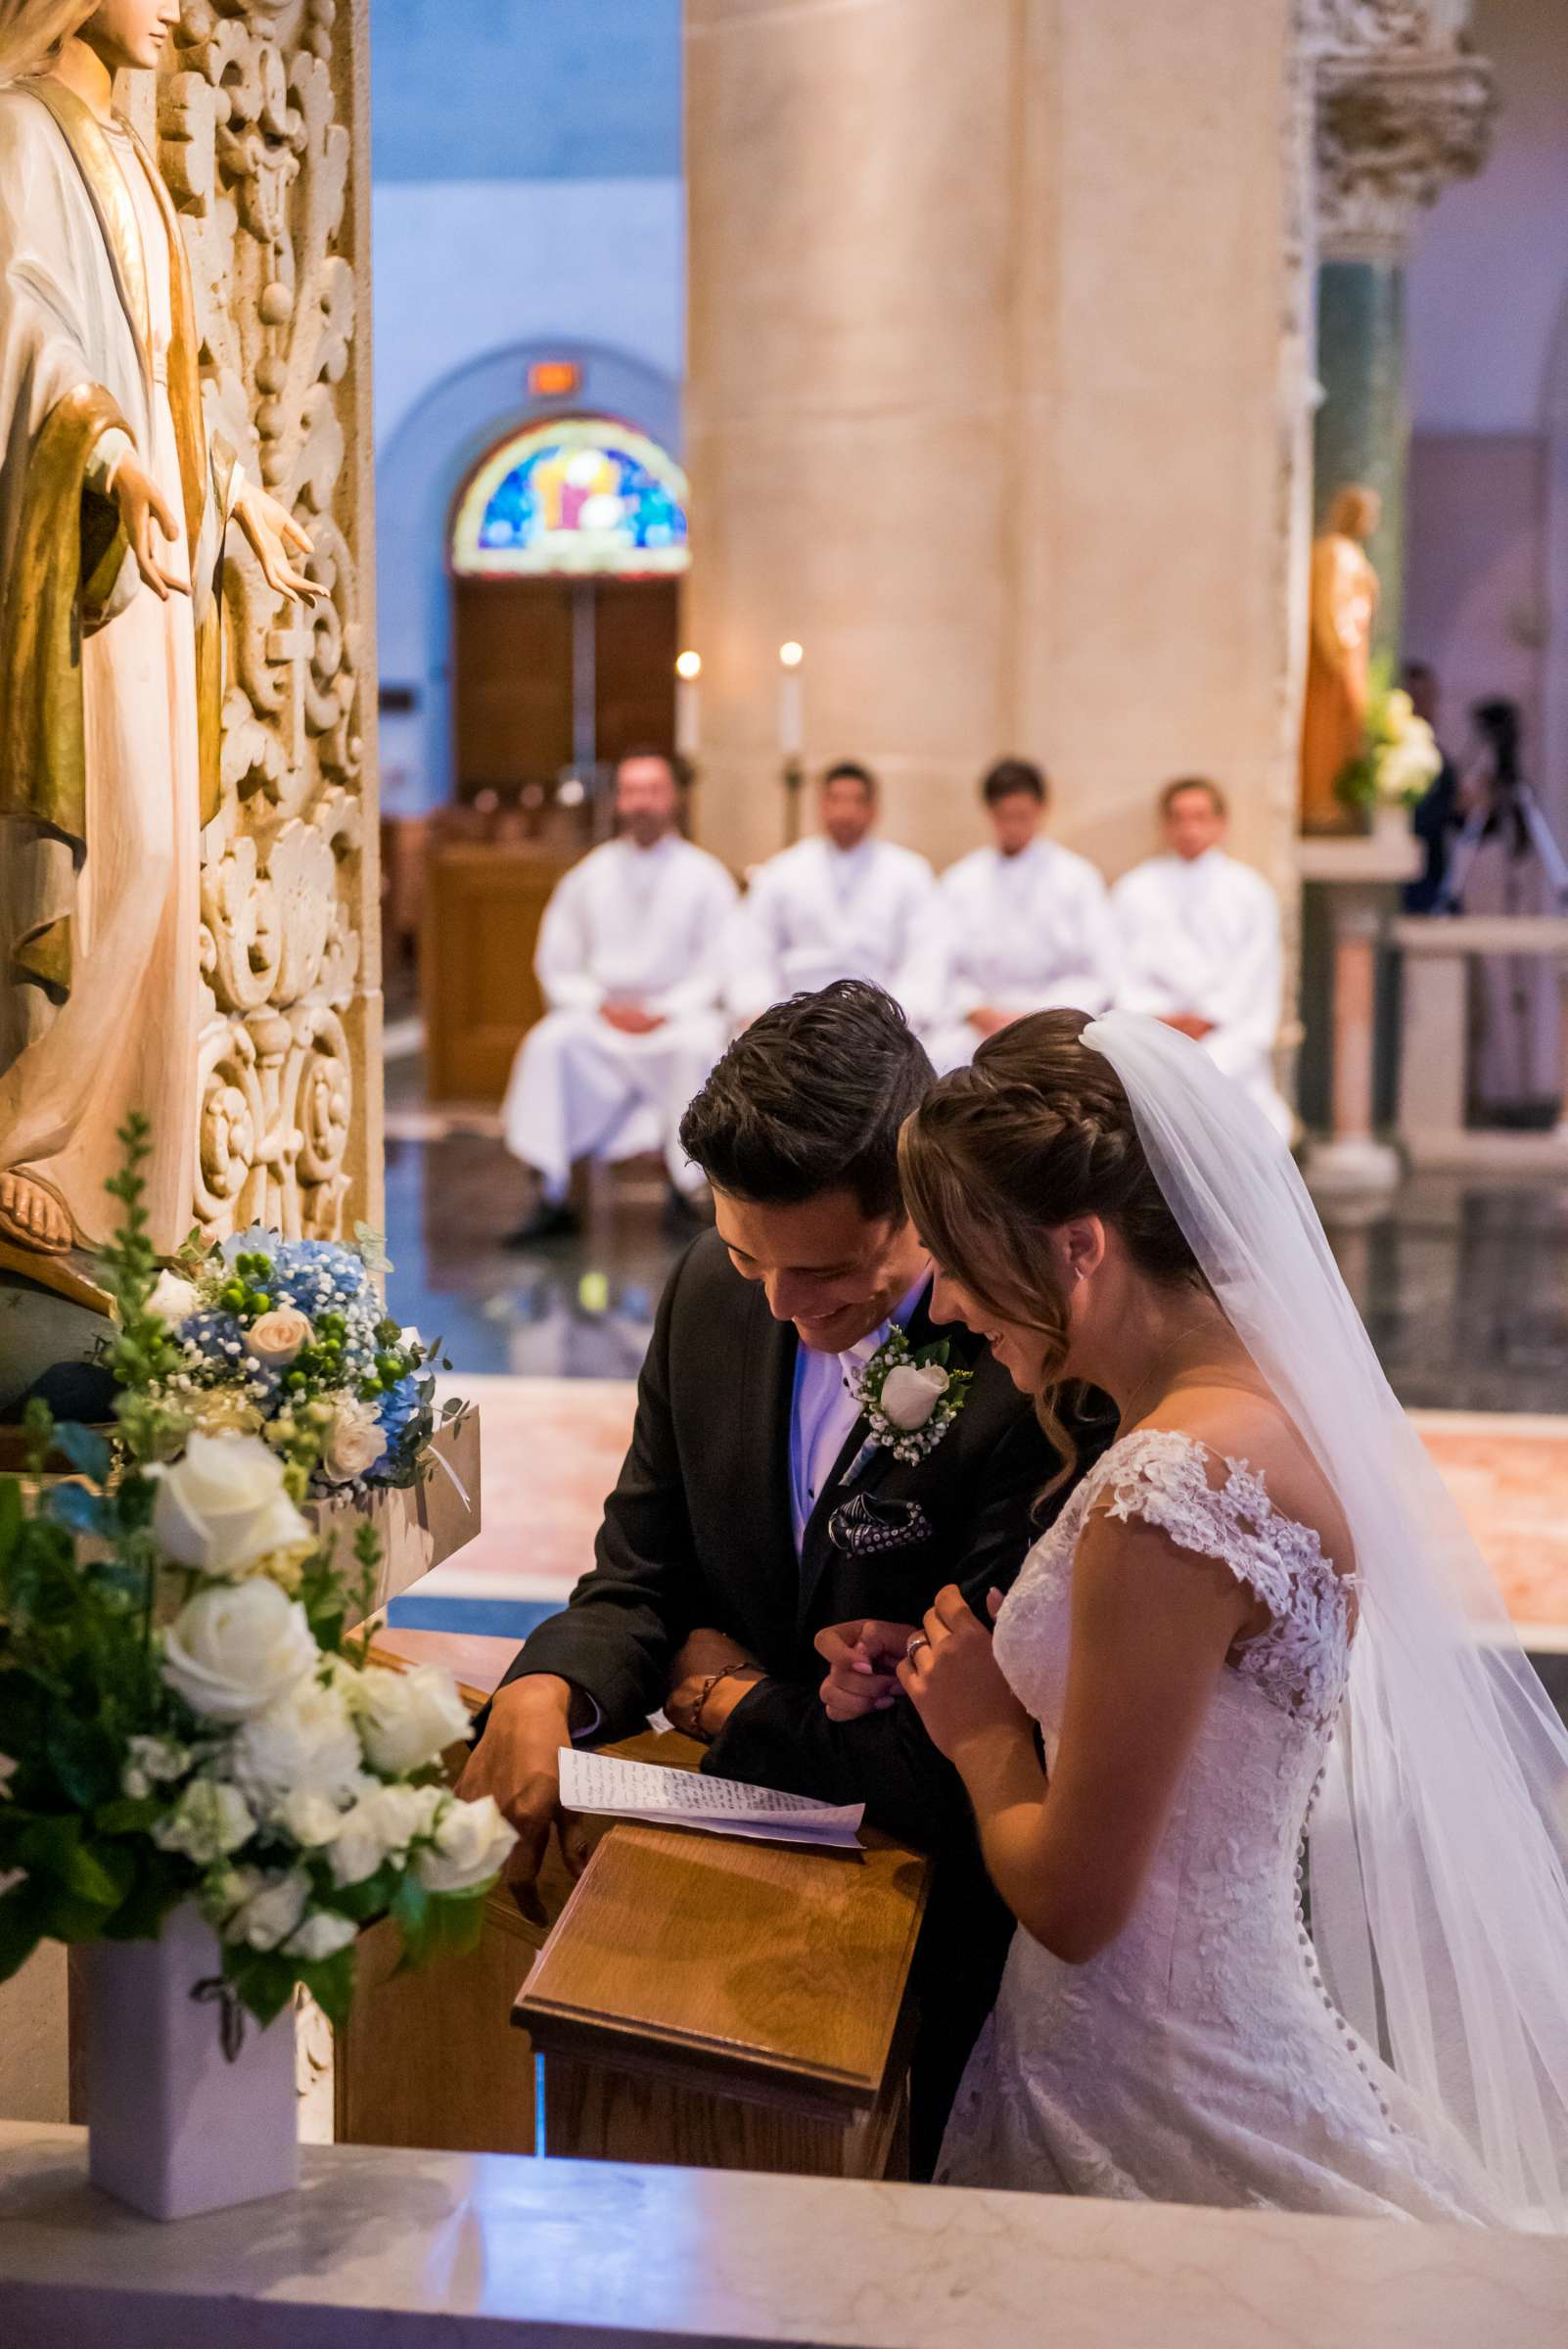 The Immaculata Wedding, Arianna and Jonah Wedding Photo #132 by True Photography